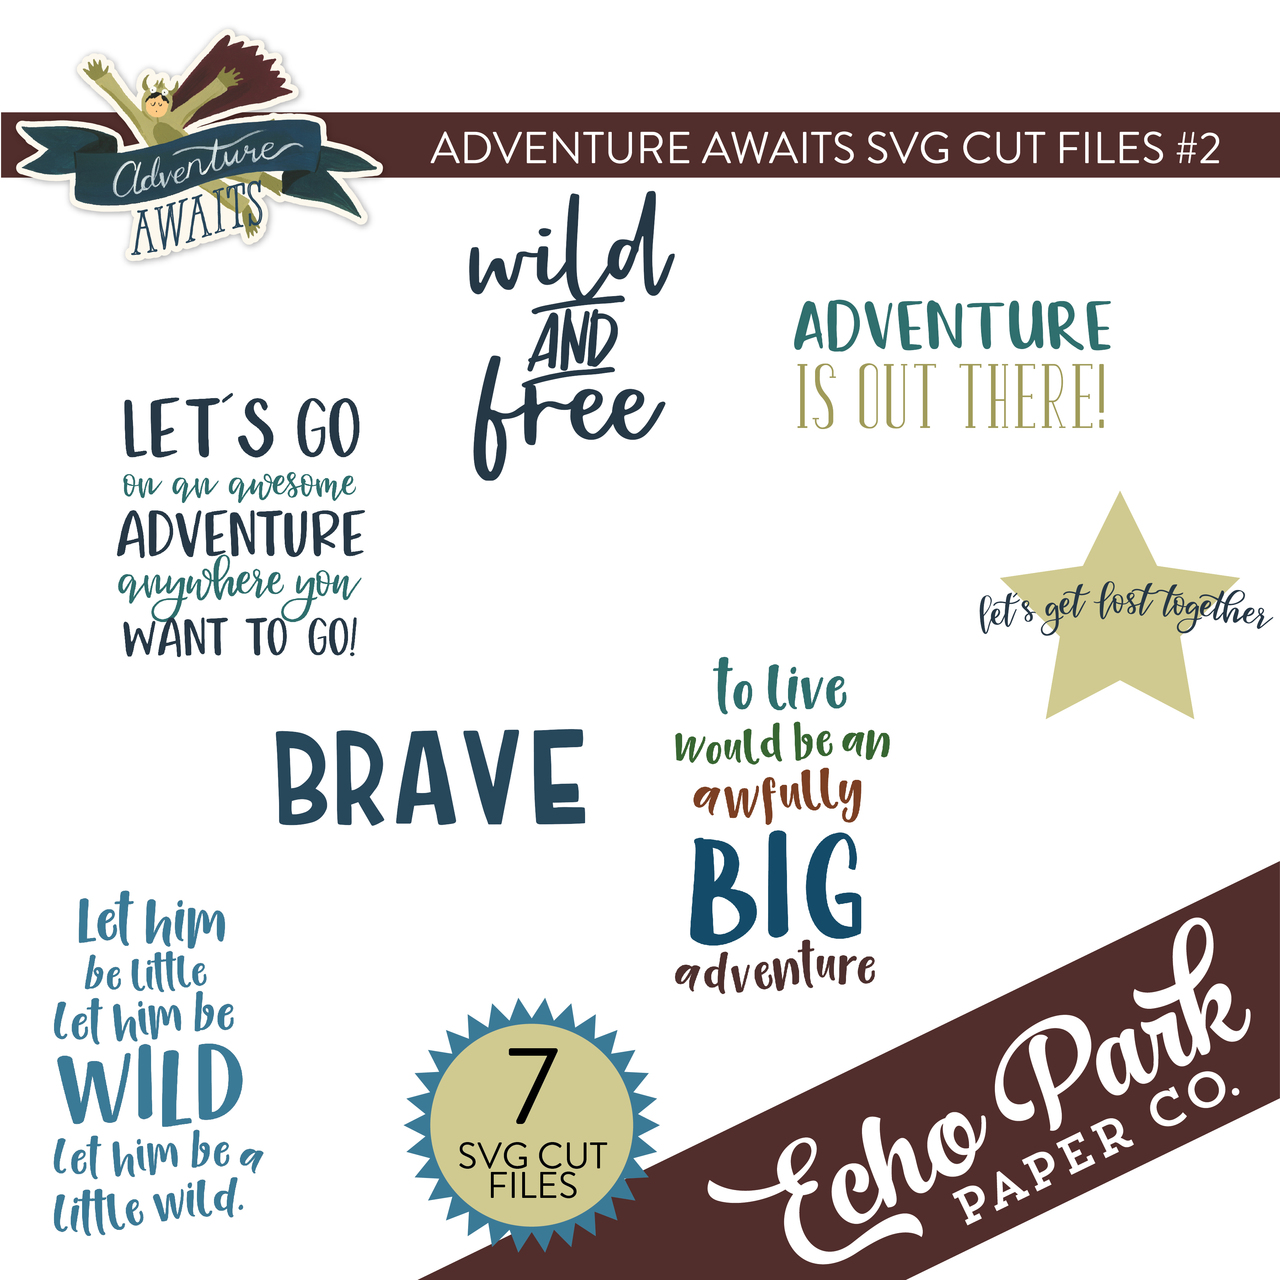 Adventure Awaits SVG Cut Files #2